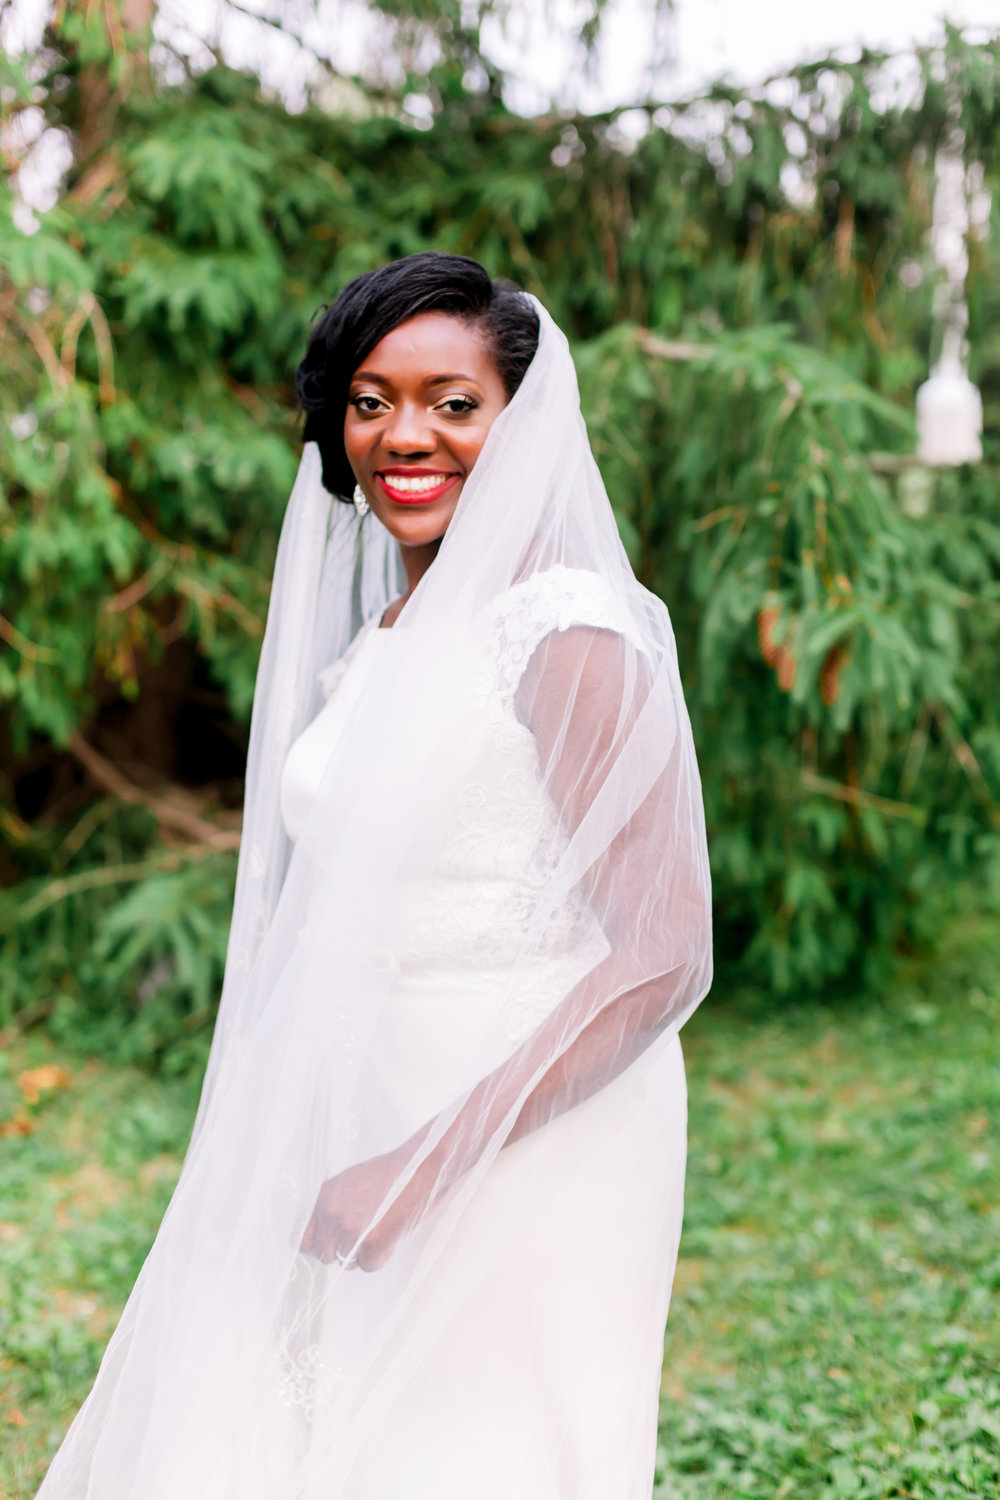 Wedding Photography Kenyan Canadian Photographer Karimah Gheddai Tyndale University College African Black couples Portraits Blue Suit International Multicultural Ontario Toronto Canada Beautiful bride